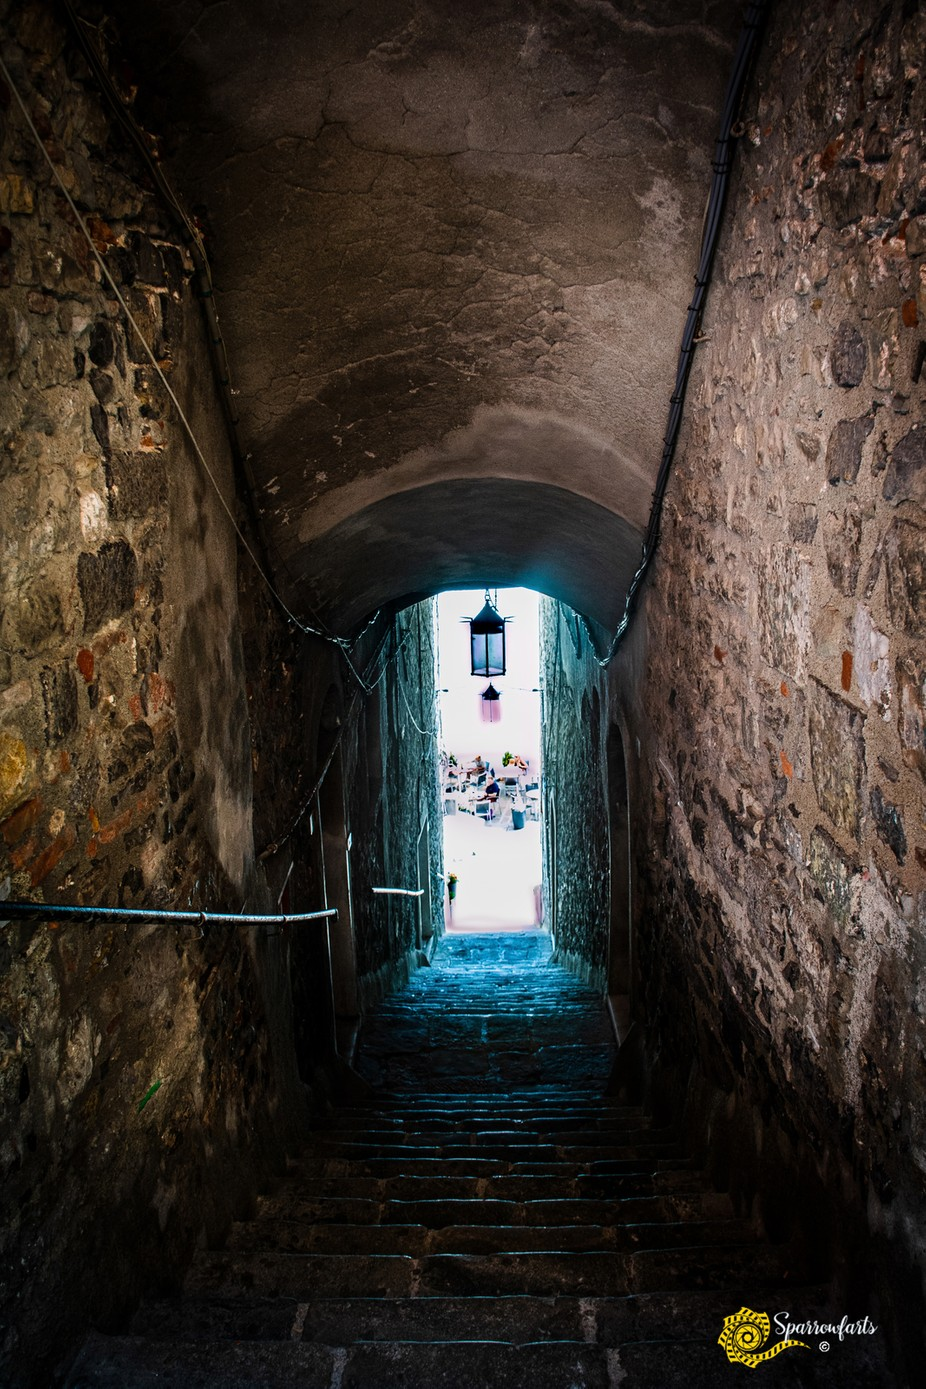 ISO 400 - 18mm f/5.0 1/100sec  Wandering the streets of the Old City of Porto Venere